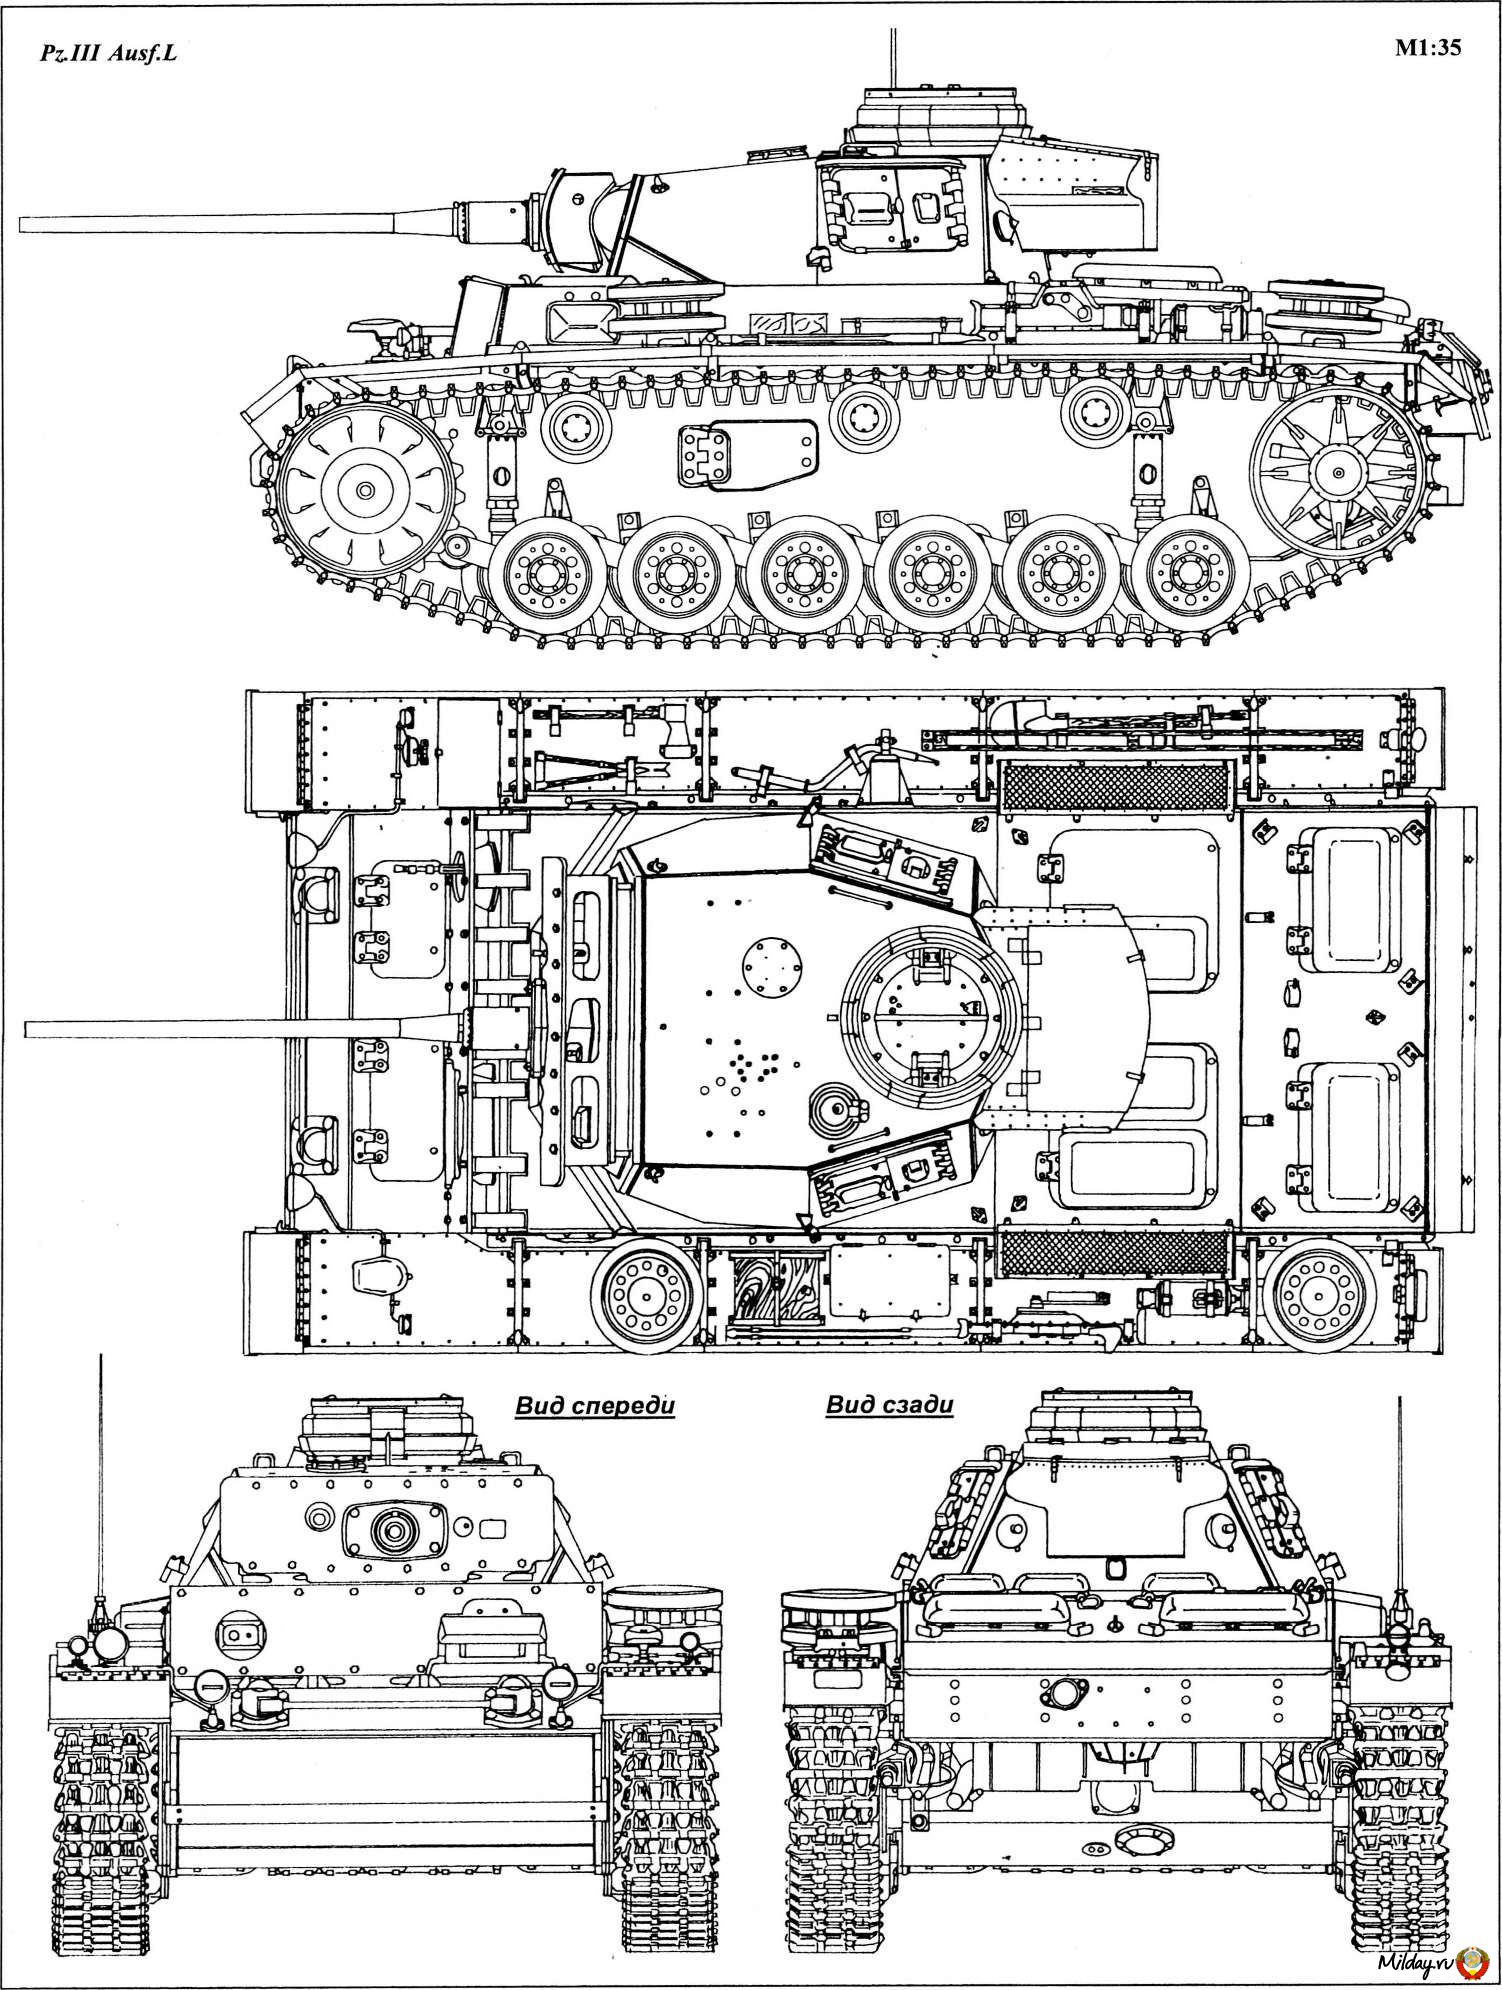 Request Any Timepieces That Have A Panzer Iii Kind Of